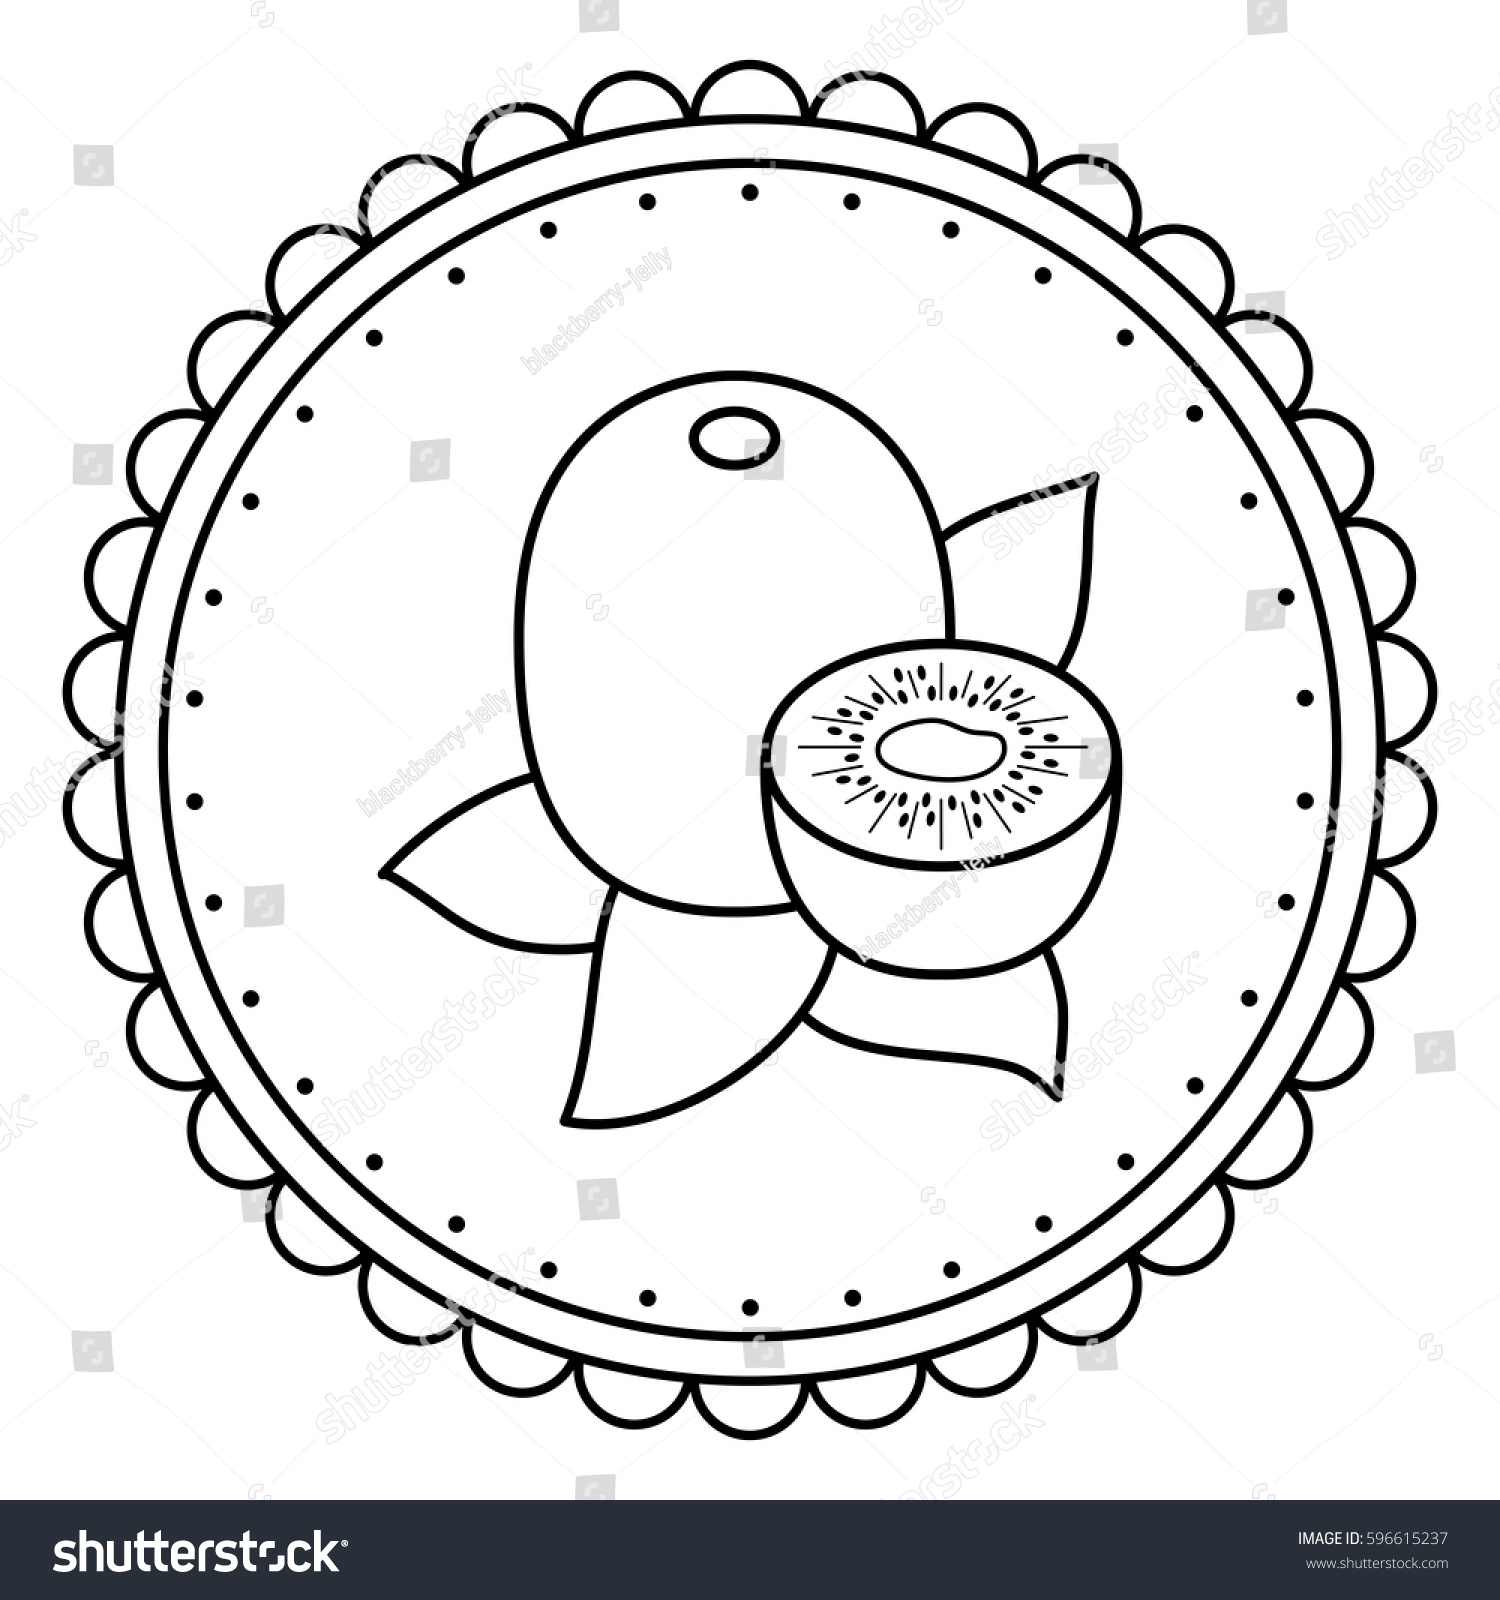 1500x1600 Stock Vector Black And White Illustration Of A Kiwi Coloring Page